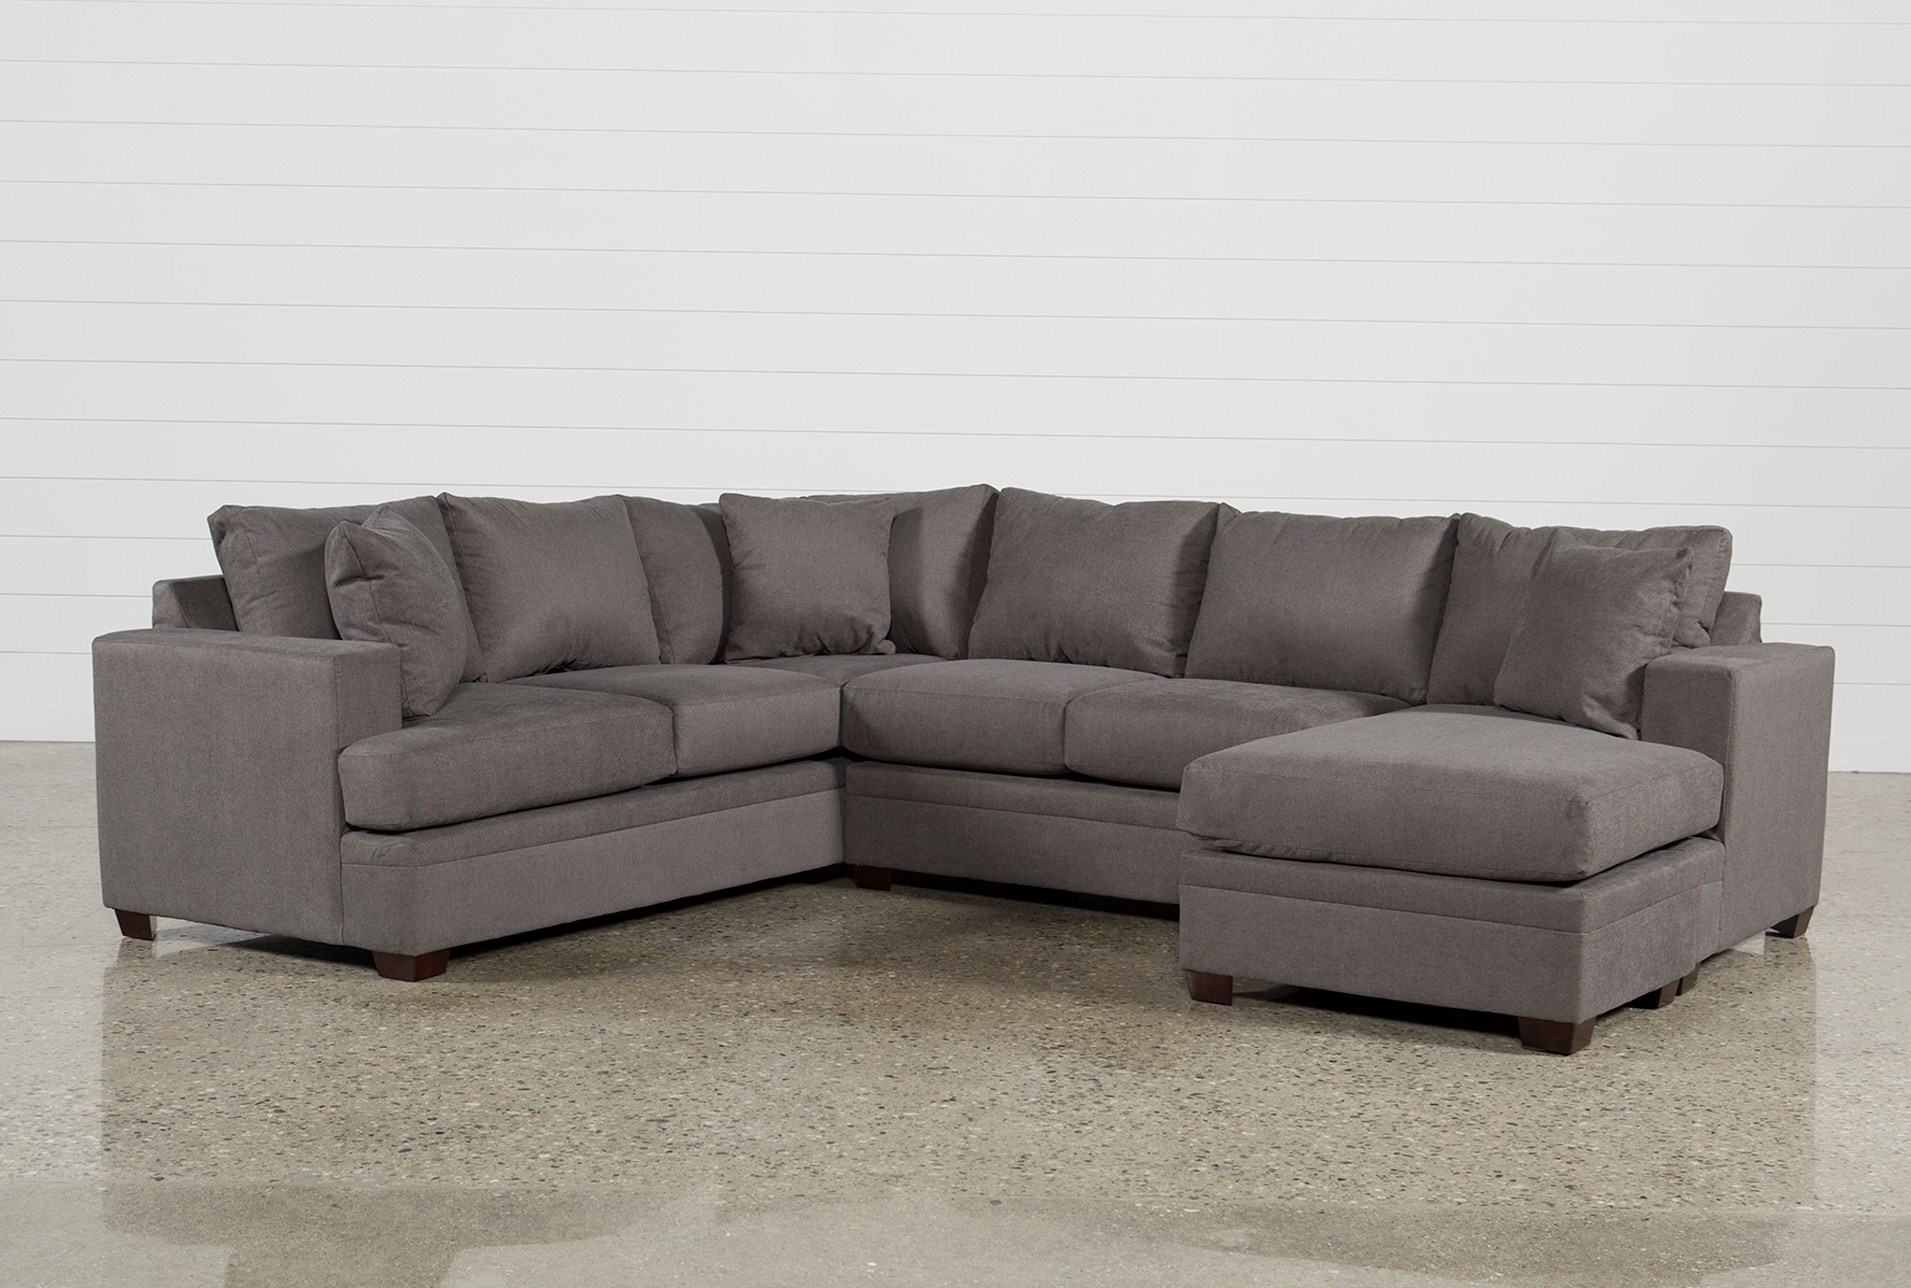 walmart piece ip com urbana sofa sectional with chaise emerald home